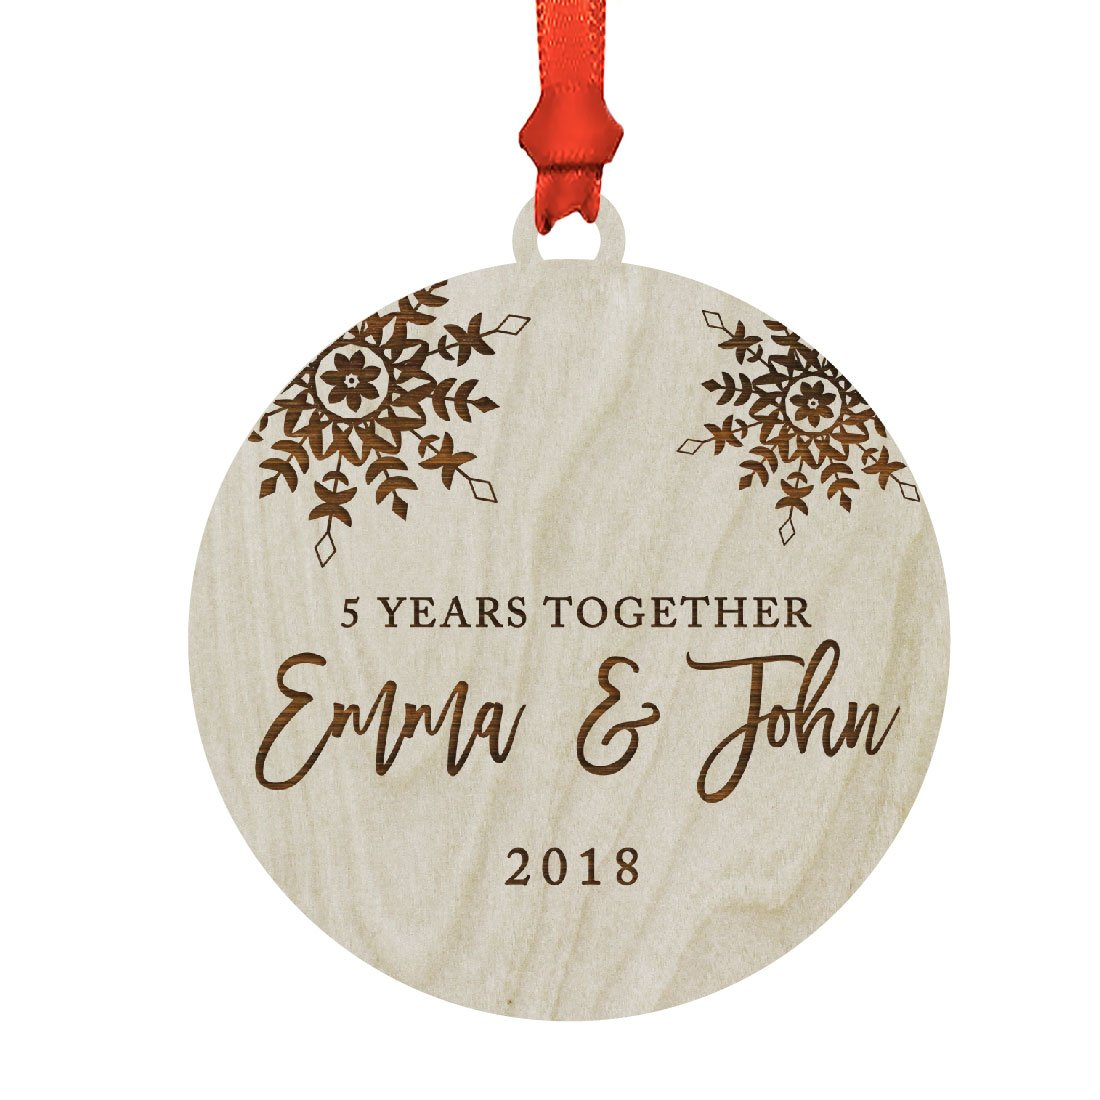 Andaz Press Personalized Wedding Anniversary Laser Engraved Wood Christmas Ornament, 5 Years Together 2018, Snowflakes, 1-Pack, Includes Ribbon and Gift Bag, Custom Name